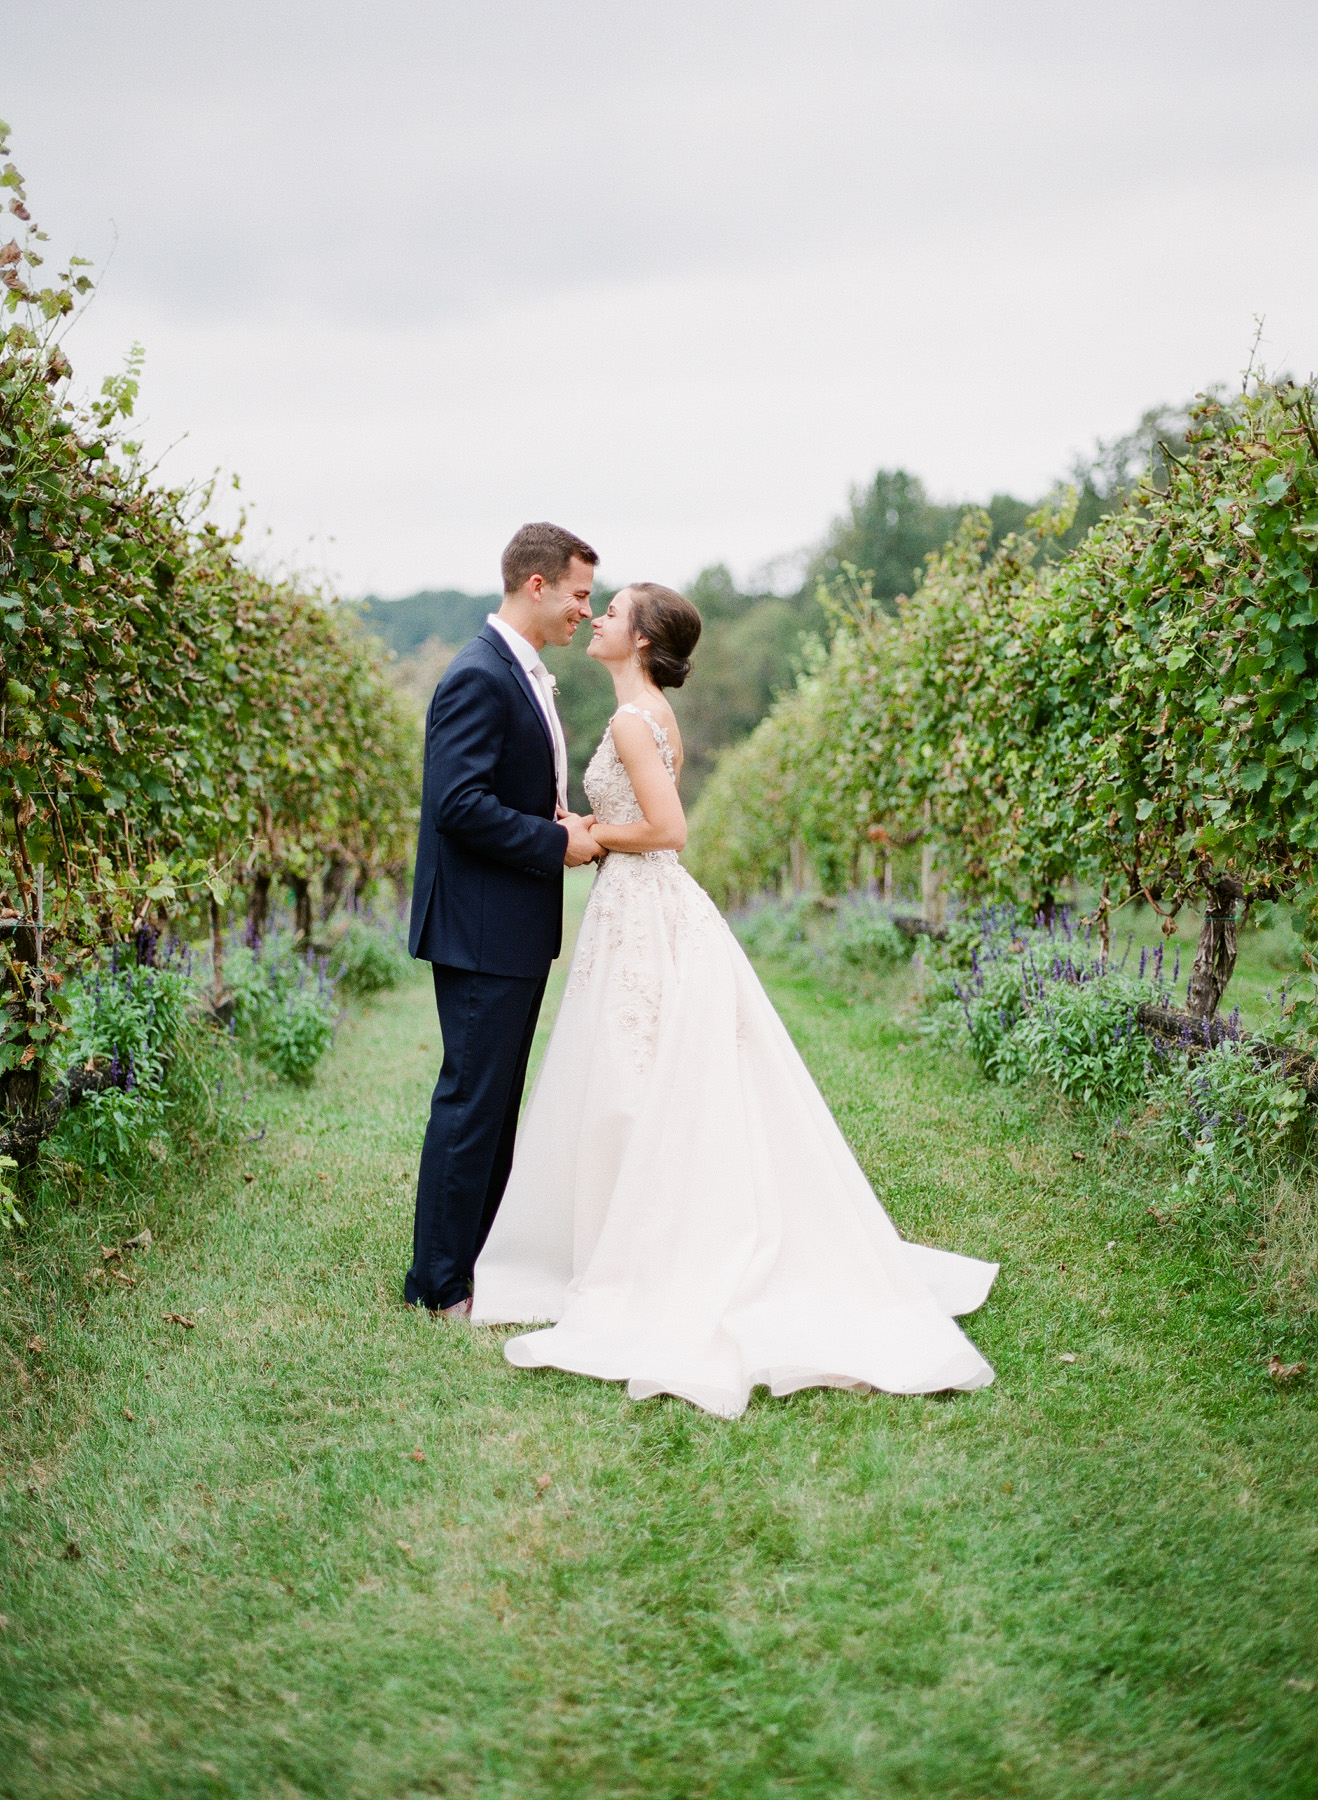 Pippin-Hill-Farm-and-Vinyards-Wedding-Film-Photography-24.jpg